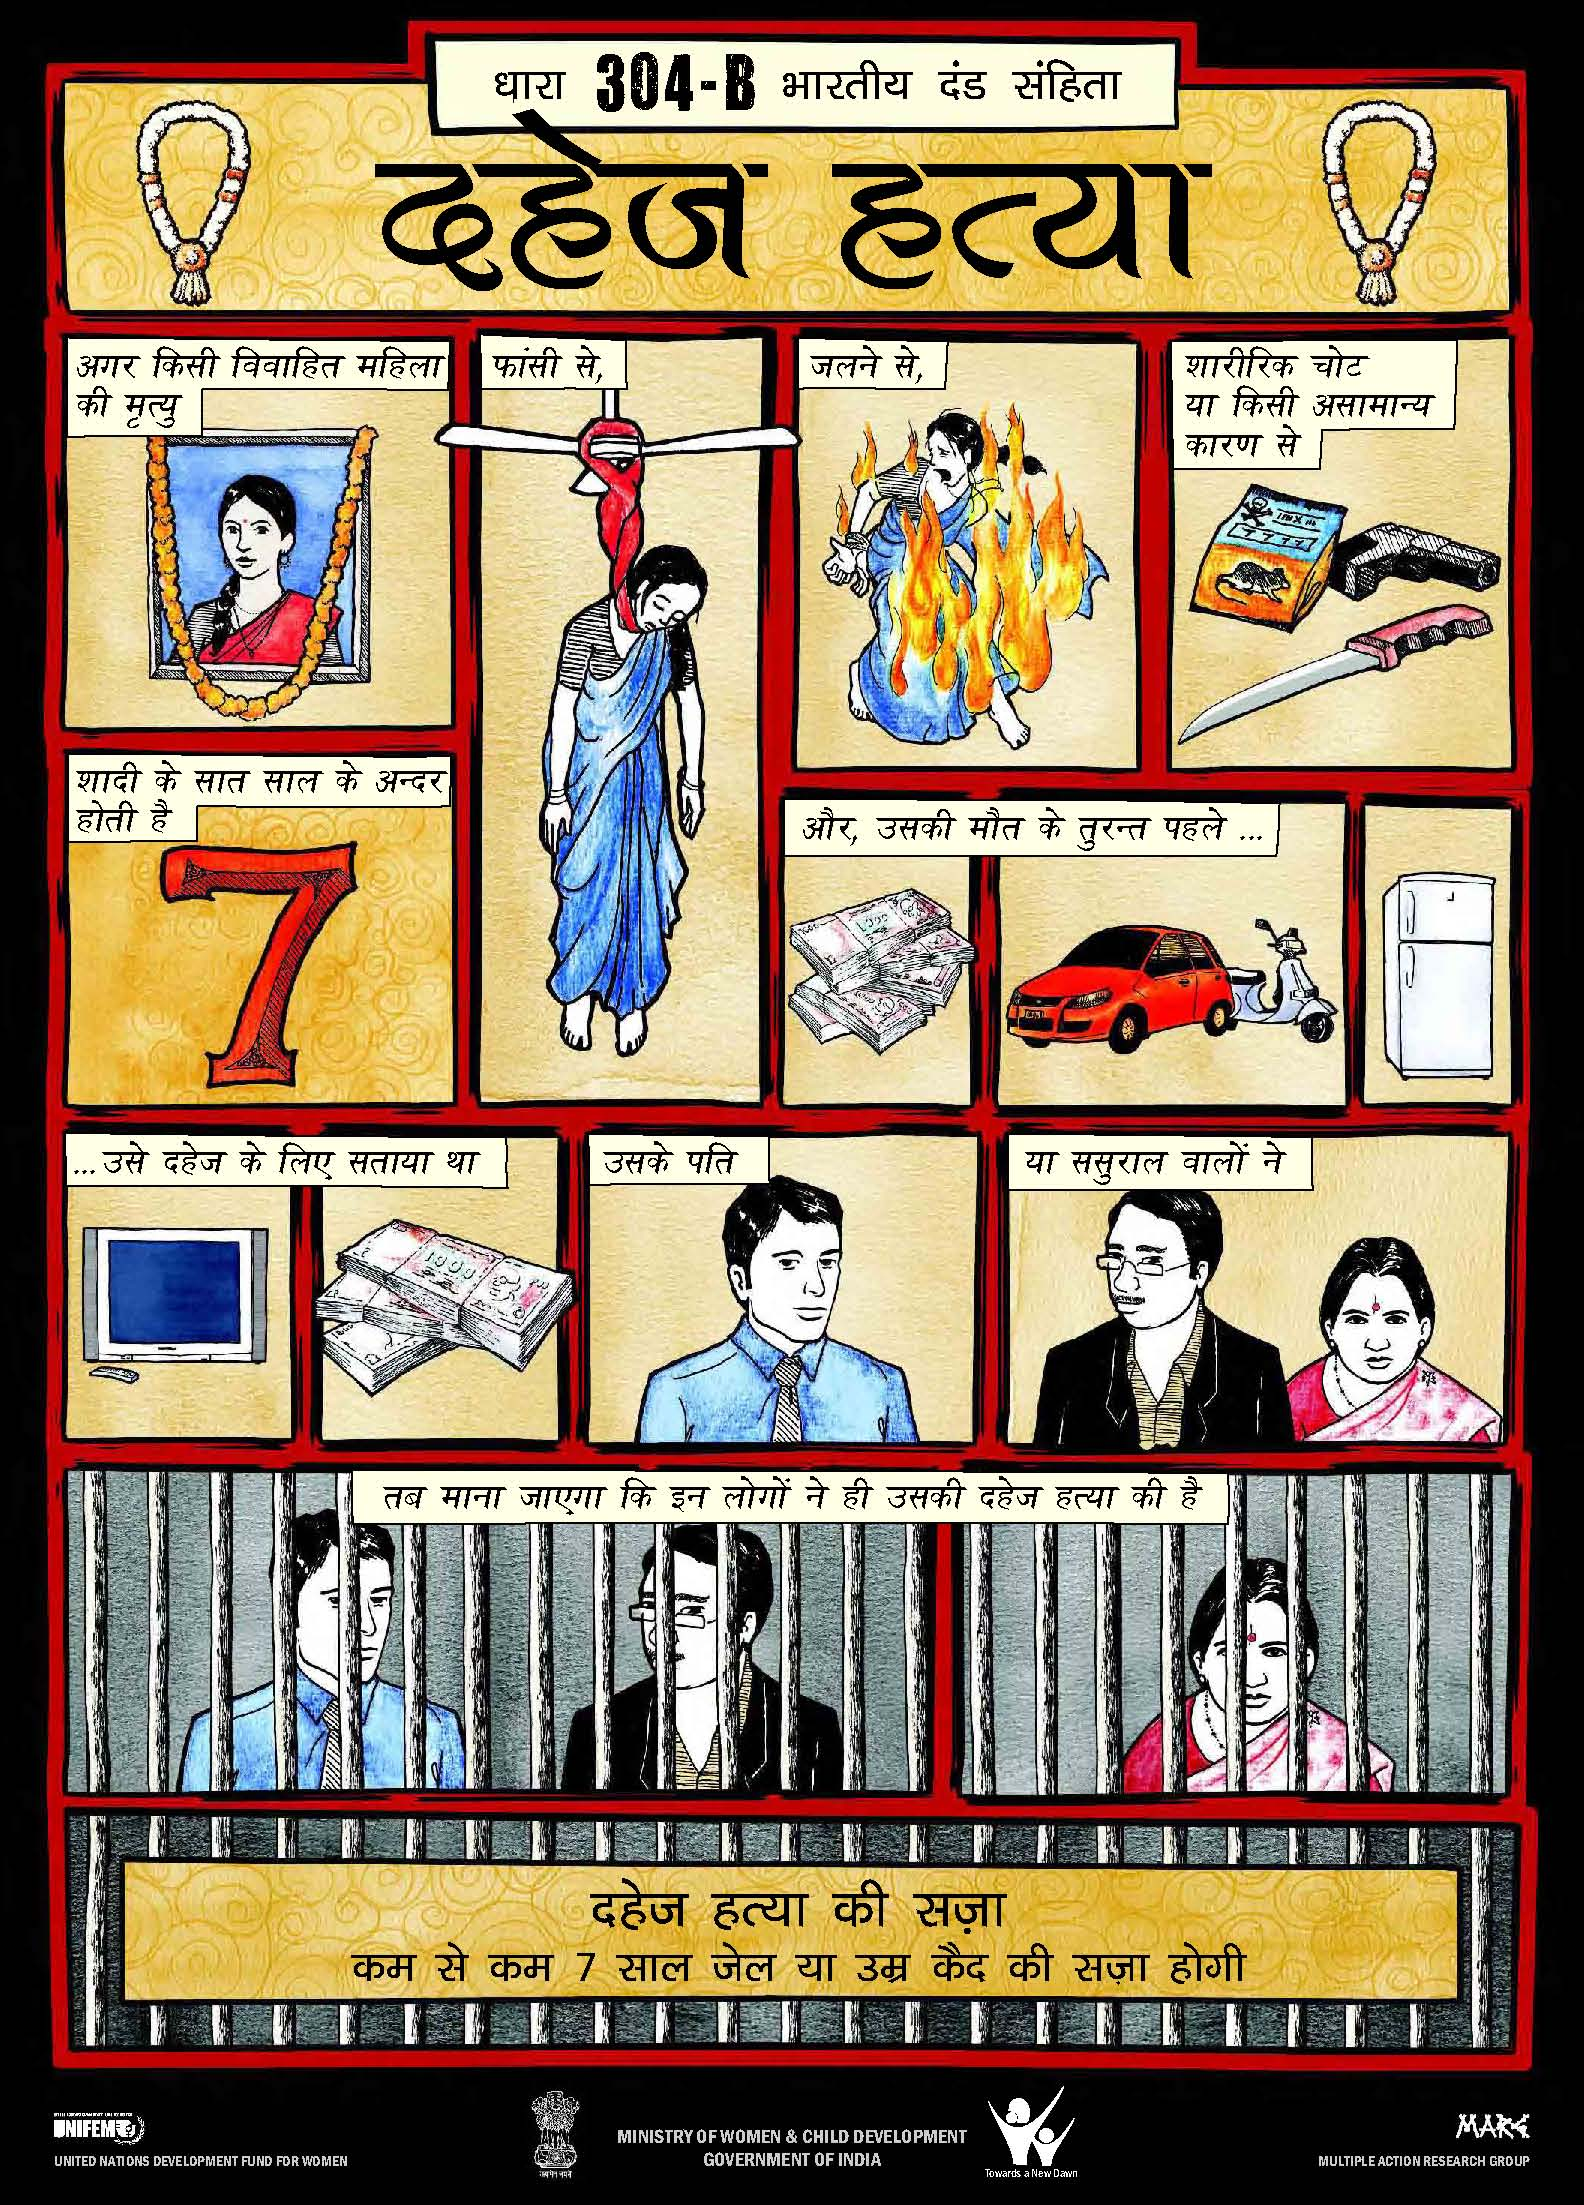 essay evils dowry system Read this essay on essay about dowry sysyem come browse our large digital warehouse of free sample one of the worst evils.